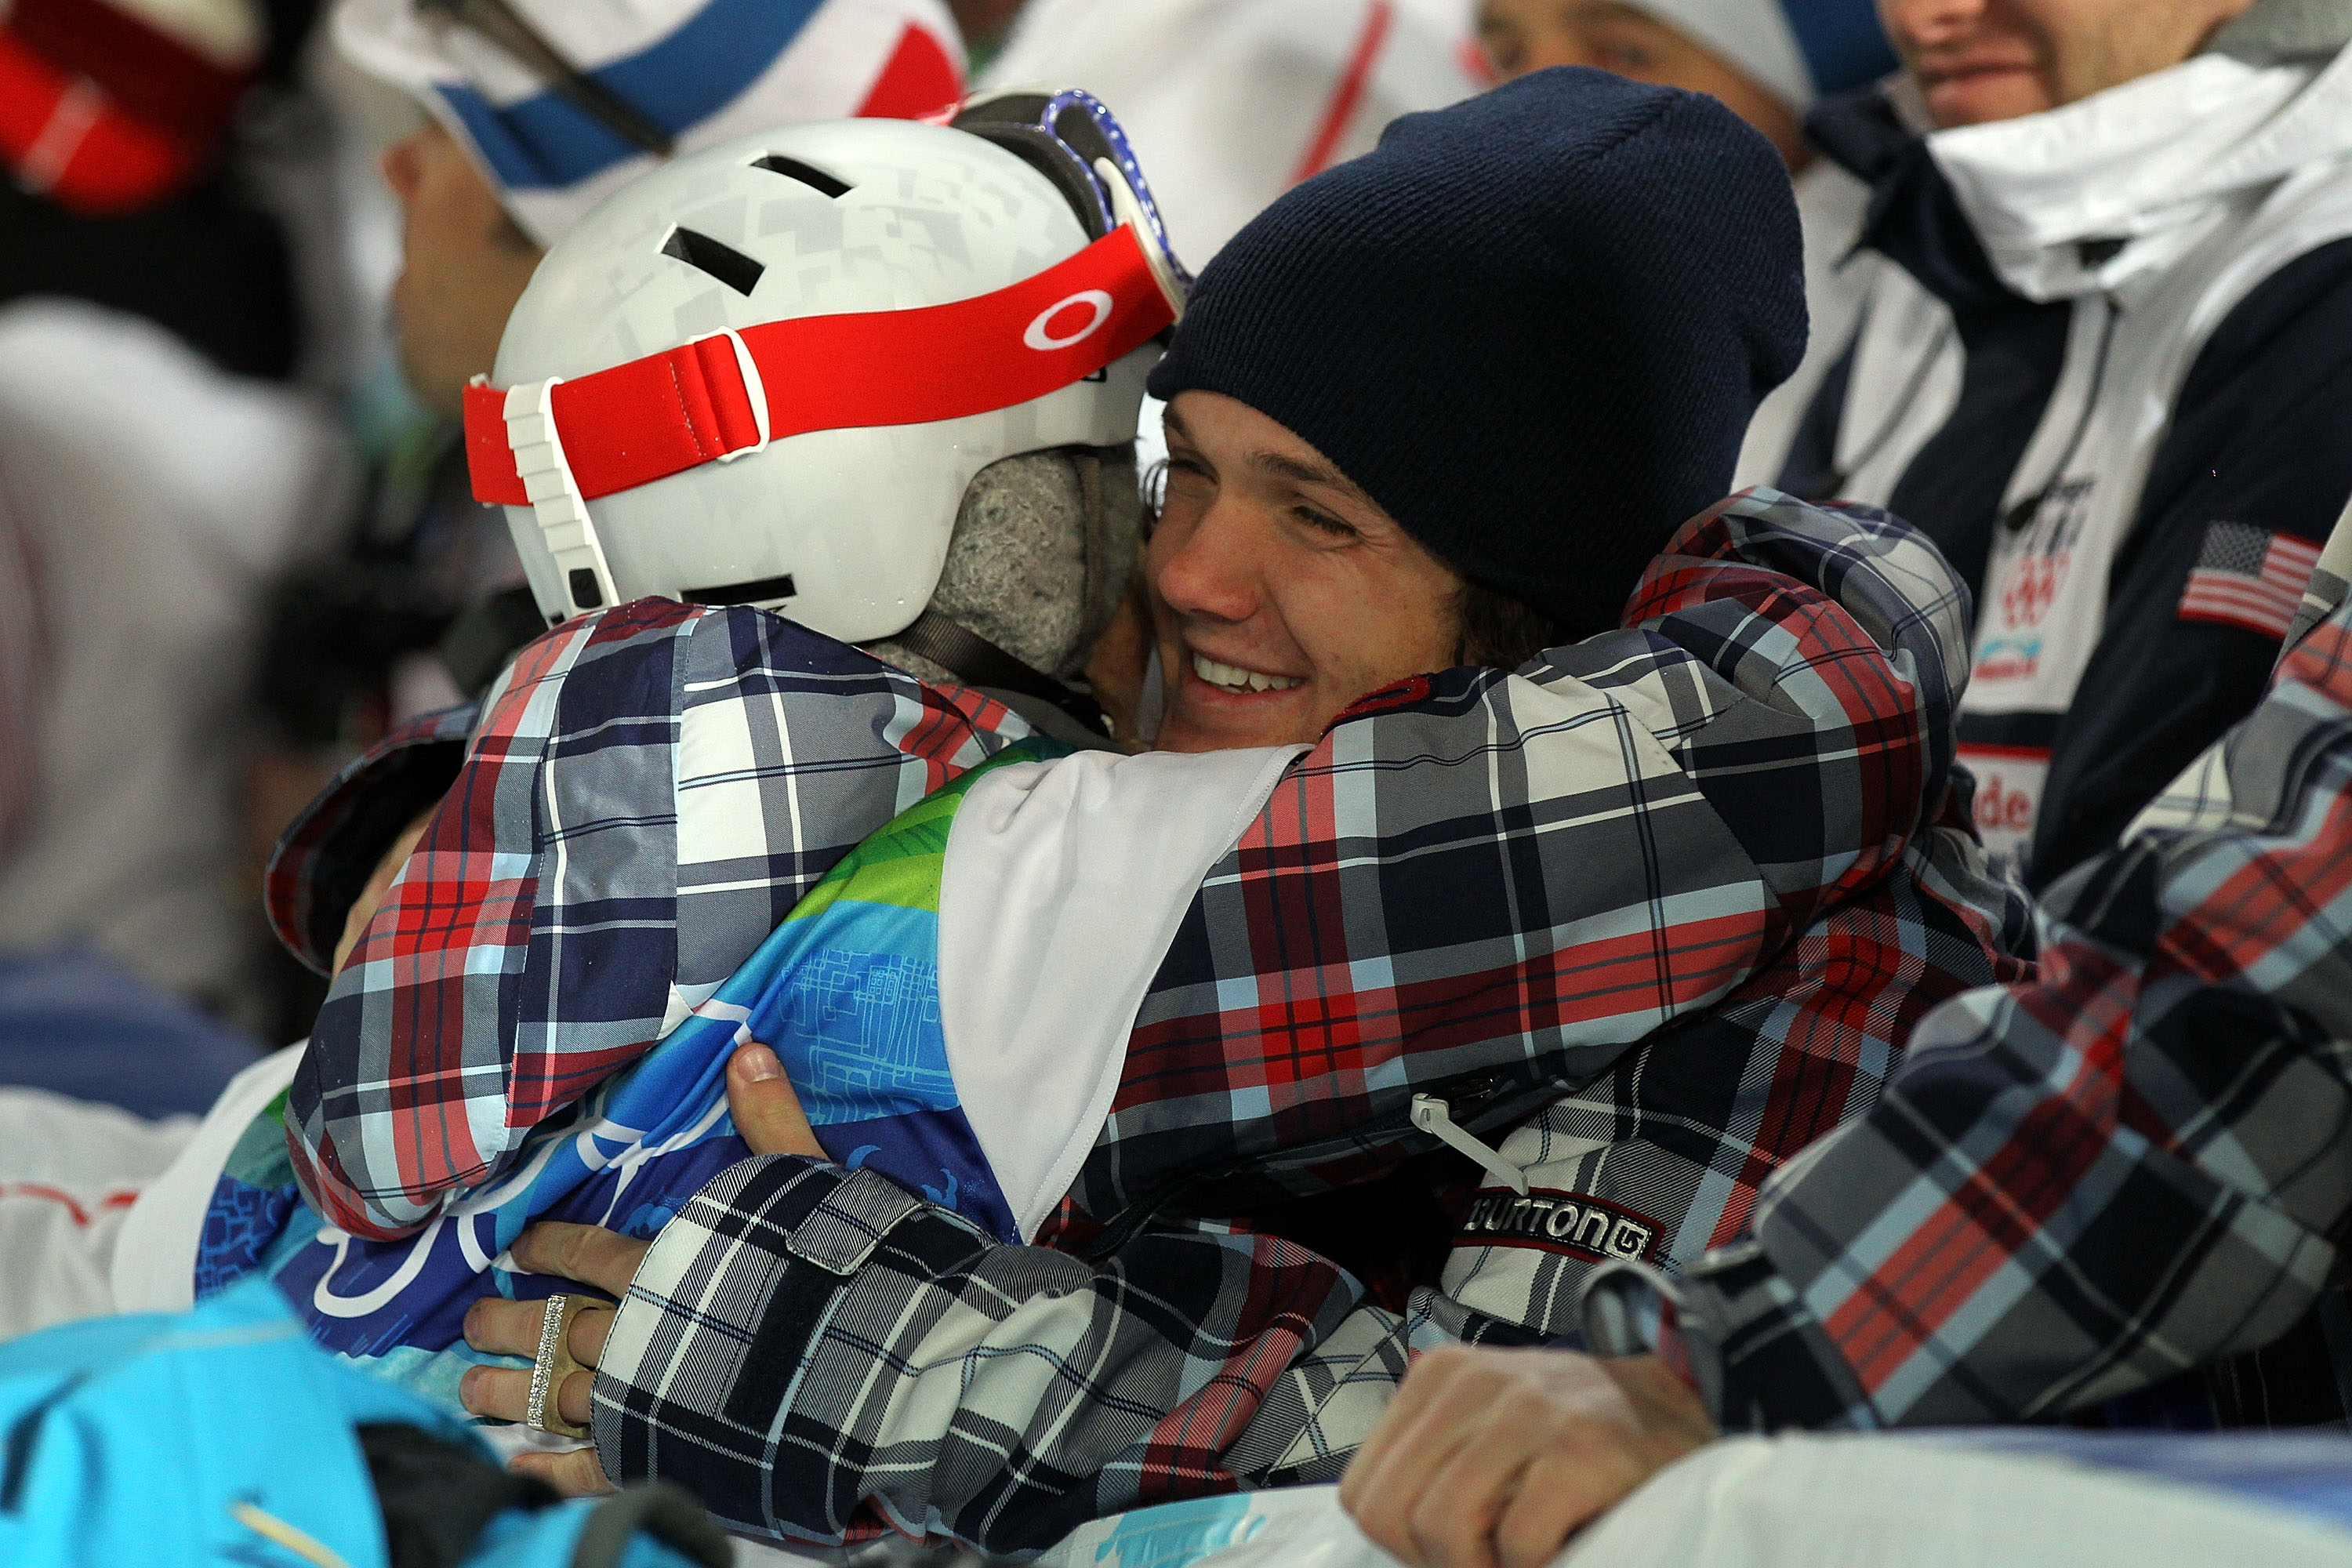 VANCOUVER, BC - FEBRUARY 18: Team USA Men's snowboard team member Louie Vito consoles Gretchen Bleiler of the United States during the women's snowboard halfpipe final on day seven of the Vancouver 2010 Winter Olympics at Cypress Snowboard & Ski-Cross Sta